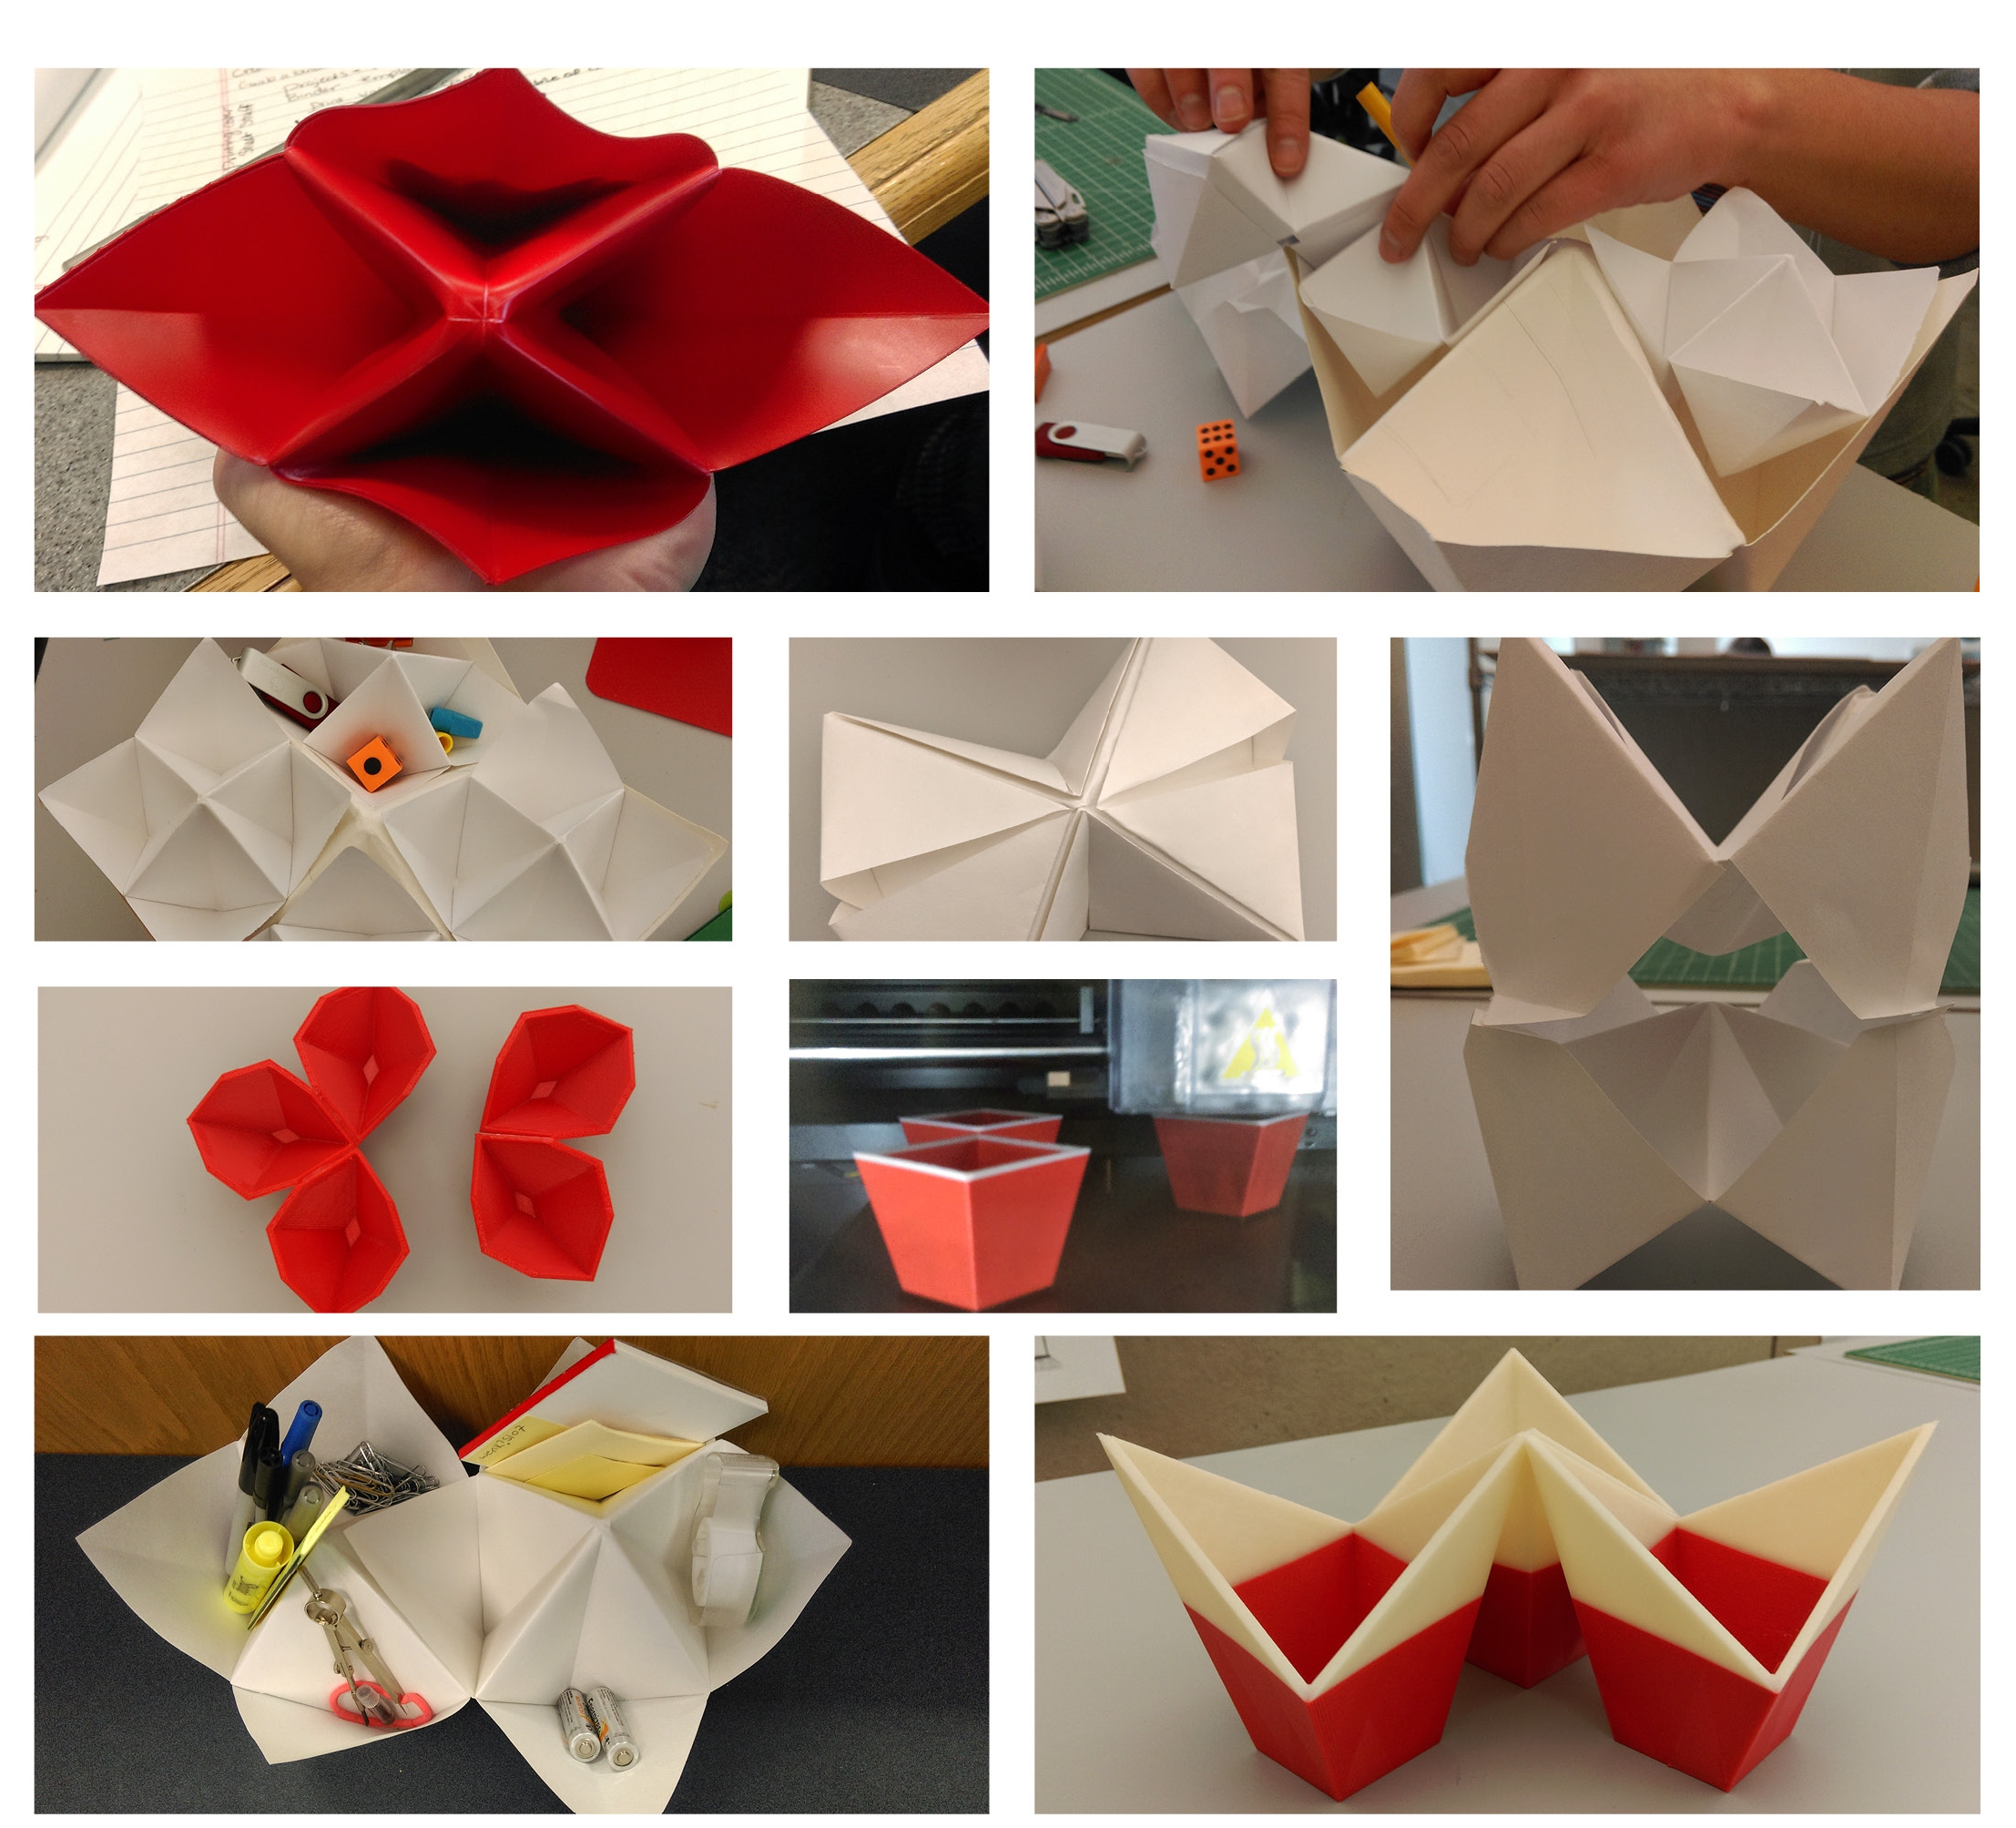 Models inspired by origami. Experimenting with Polypropylene as well as 3D printing.